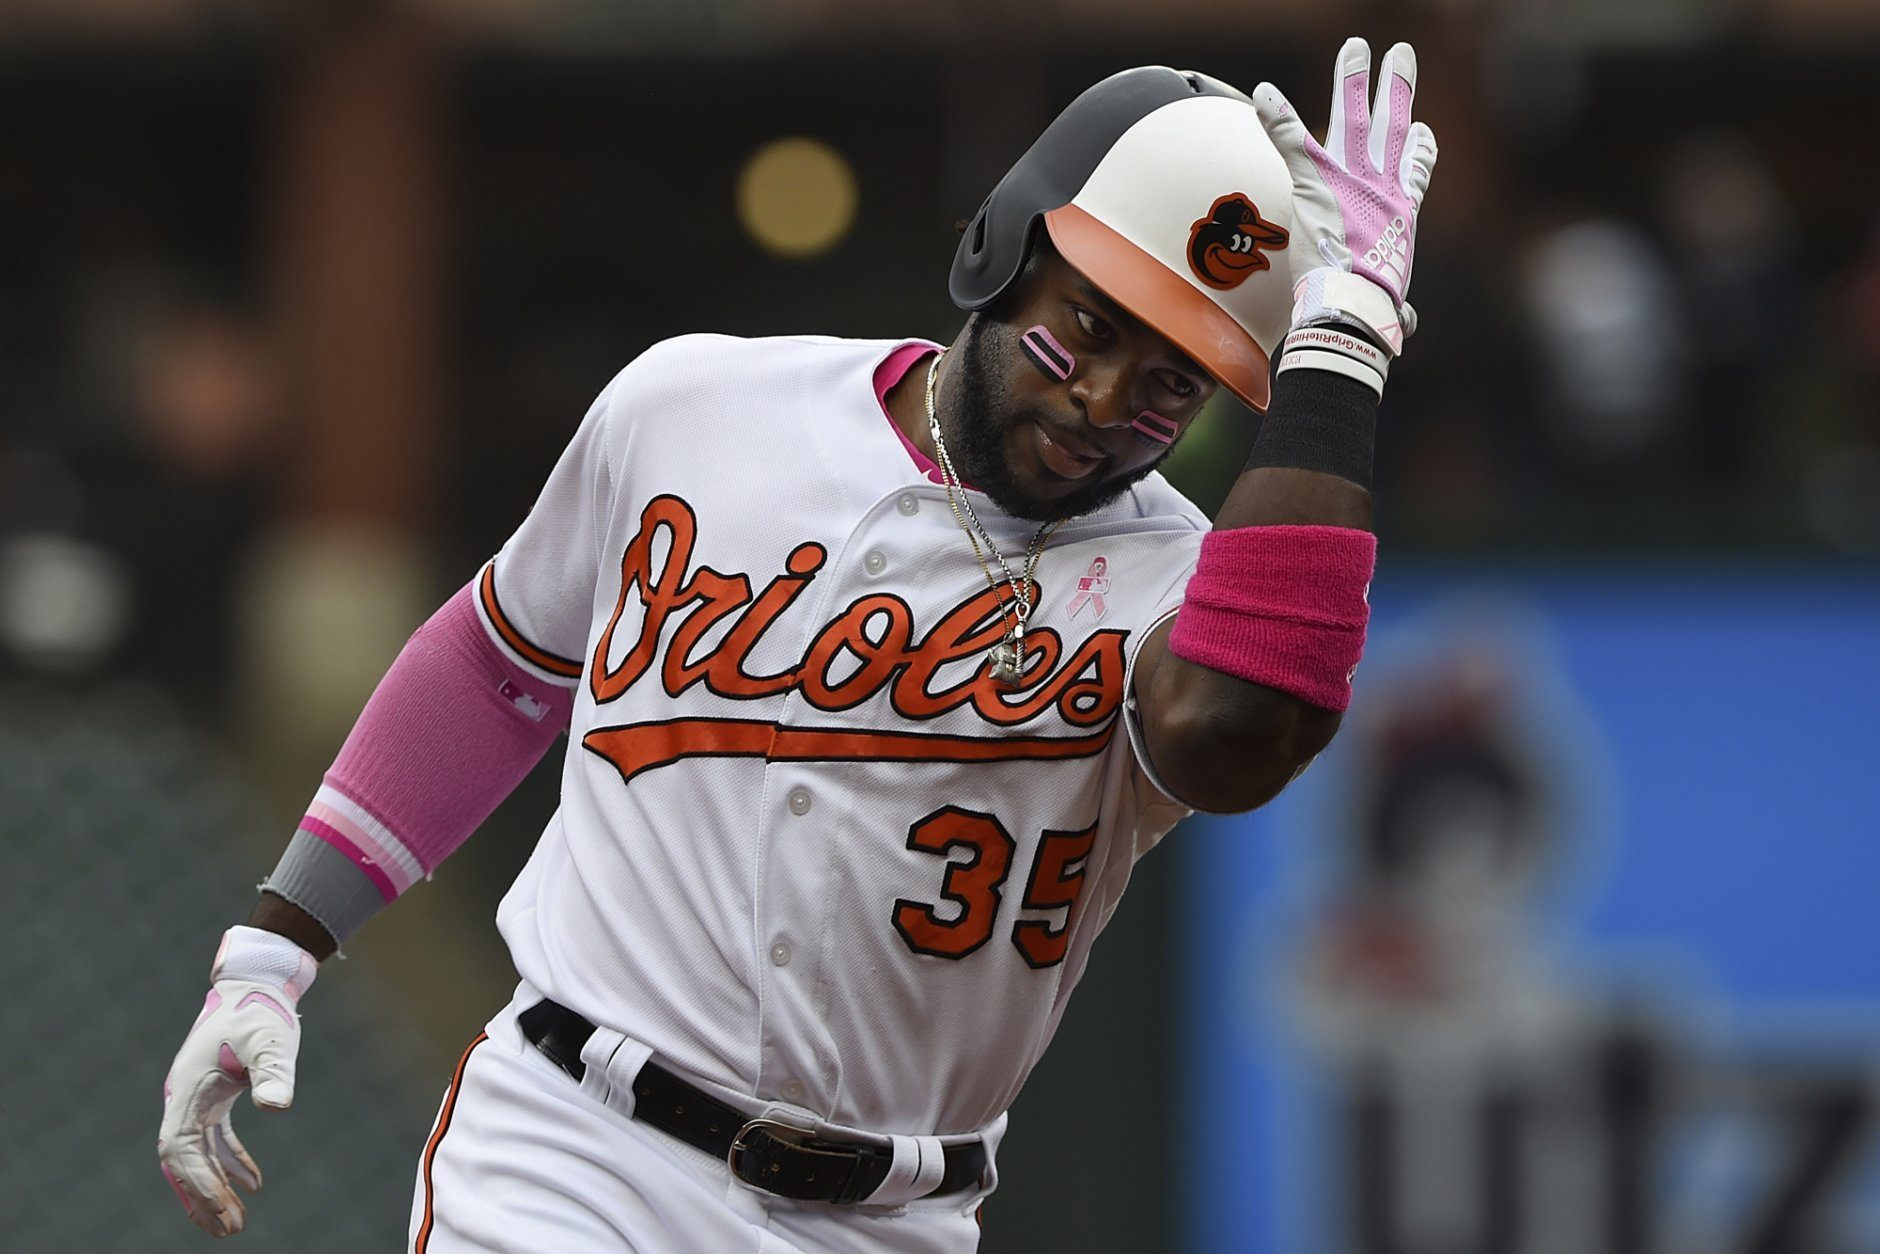 Baltimore Orioles' Dwight Smith Jr. pats his helmet while rounding third on his two-run home run against the Los Angeles Angels in the third inning of a baseball game, Sunday, May 12, 2019, in Baltimore. (AP Photo/Gail Burton)